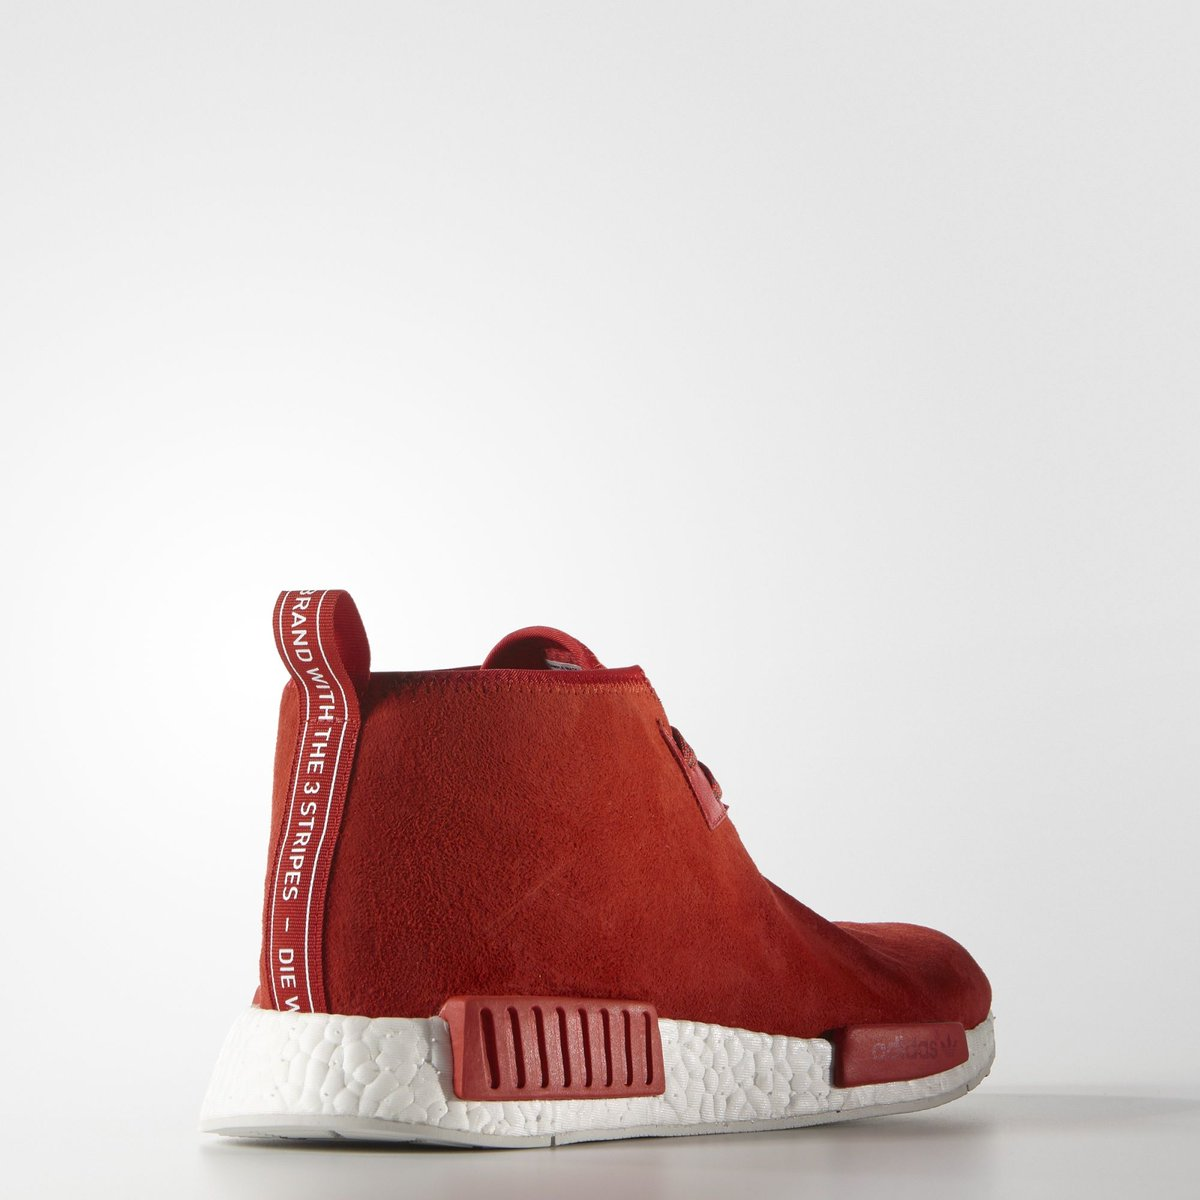 Cheap Adidas NMD R1 Europe exclusive Men's Shoes Australia